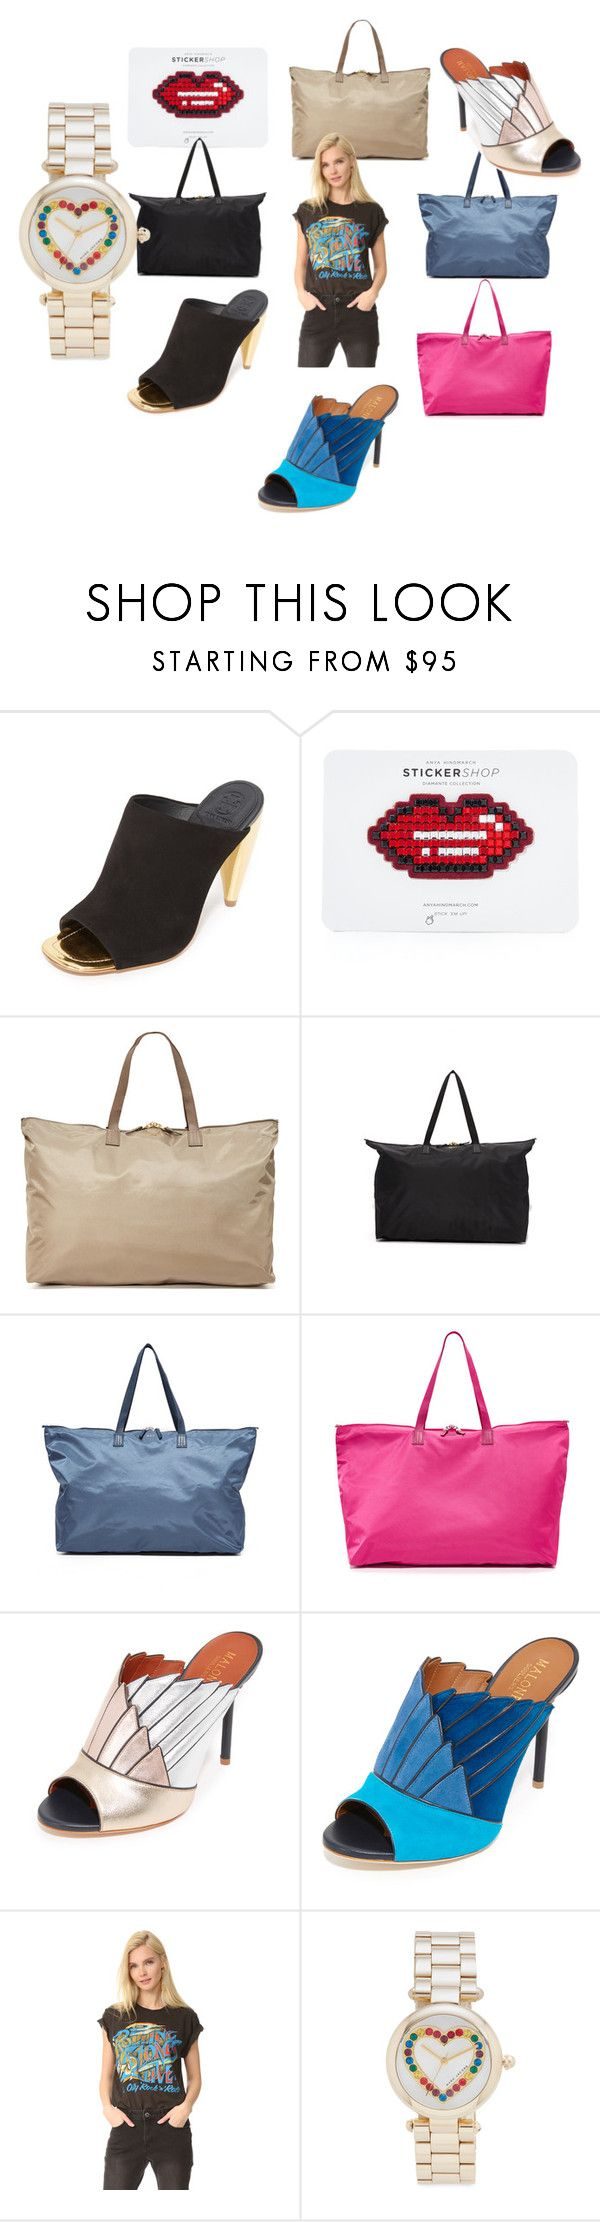 """""""casual dress jewellery fashion trends collection"""" by monica022 ❤ liked on Polyvore featuring Tory Burch, Anya Hindmarch, Tumi, Malone Souliers, MadeWorn, Marc Jacobs and vintage"""